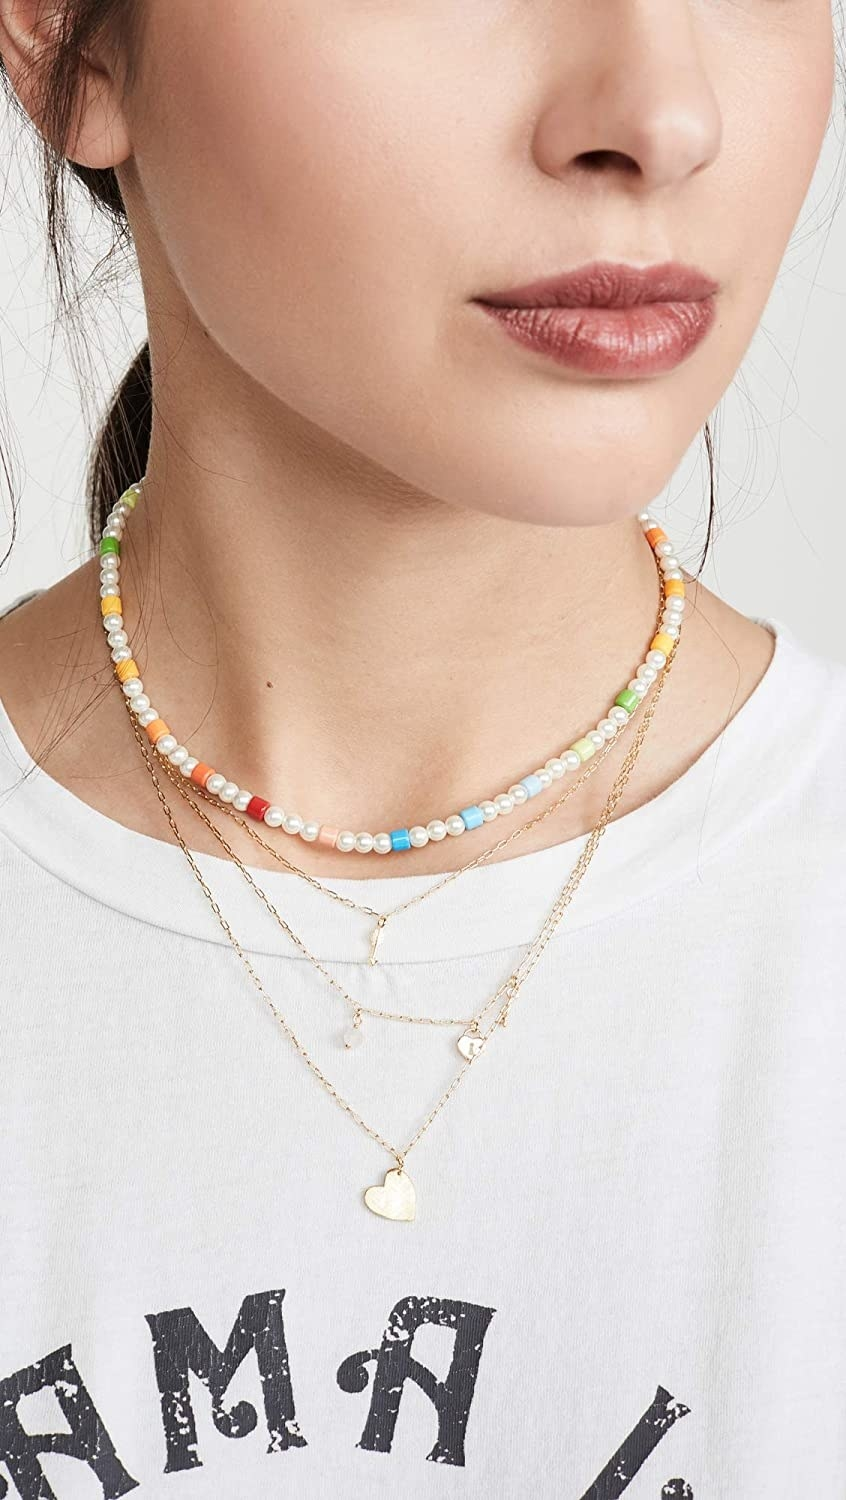 Model wearing the gold tone necklace with heart and other charms